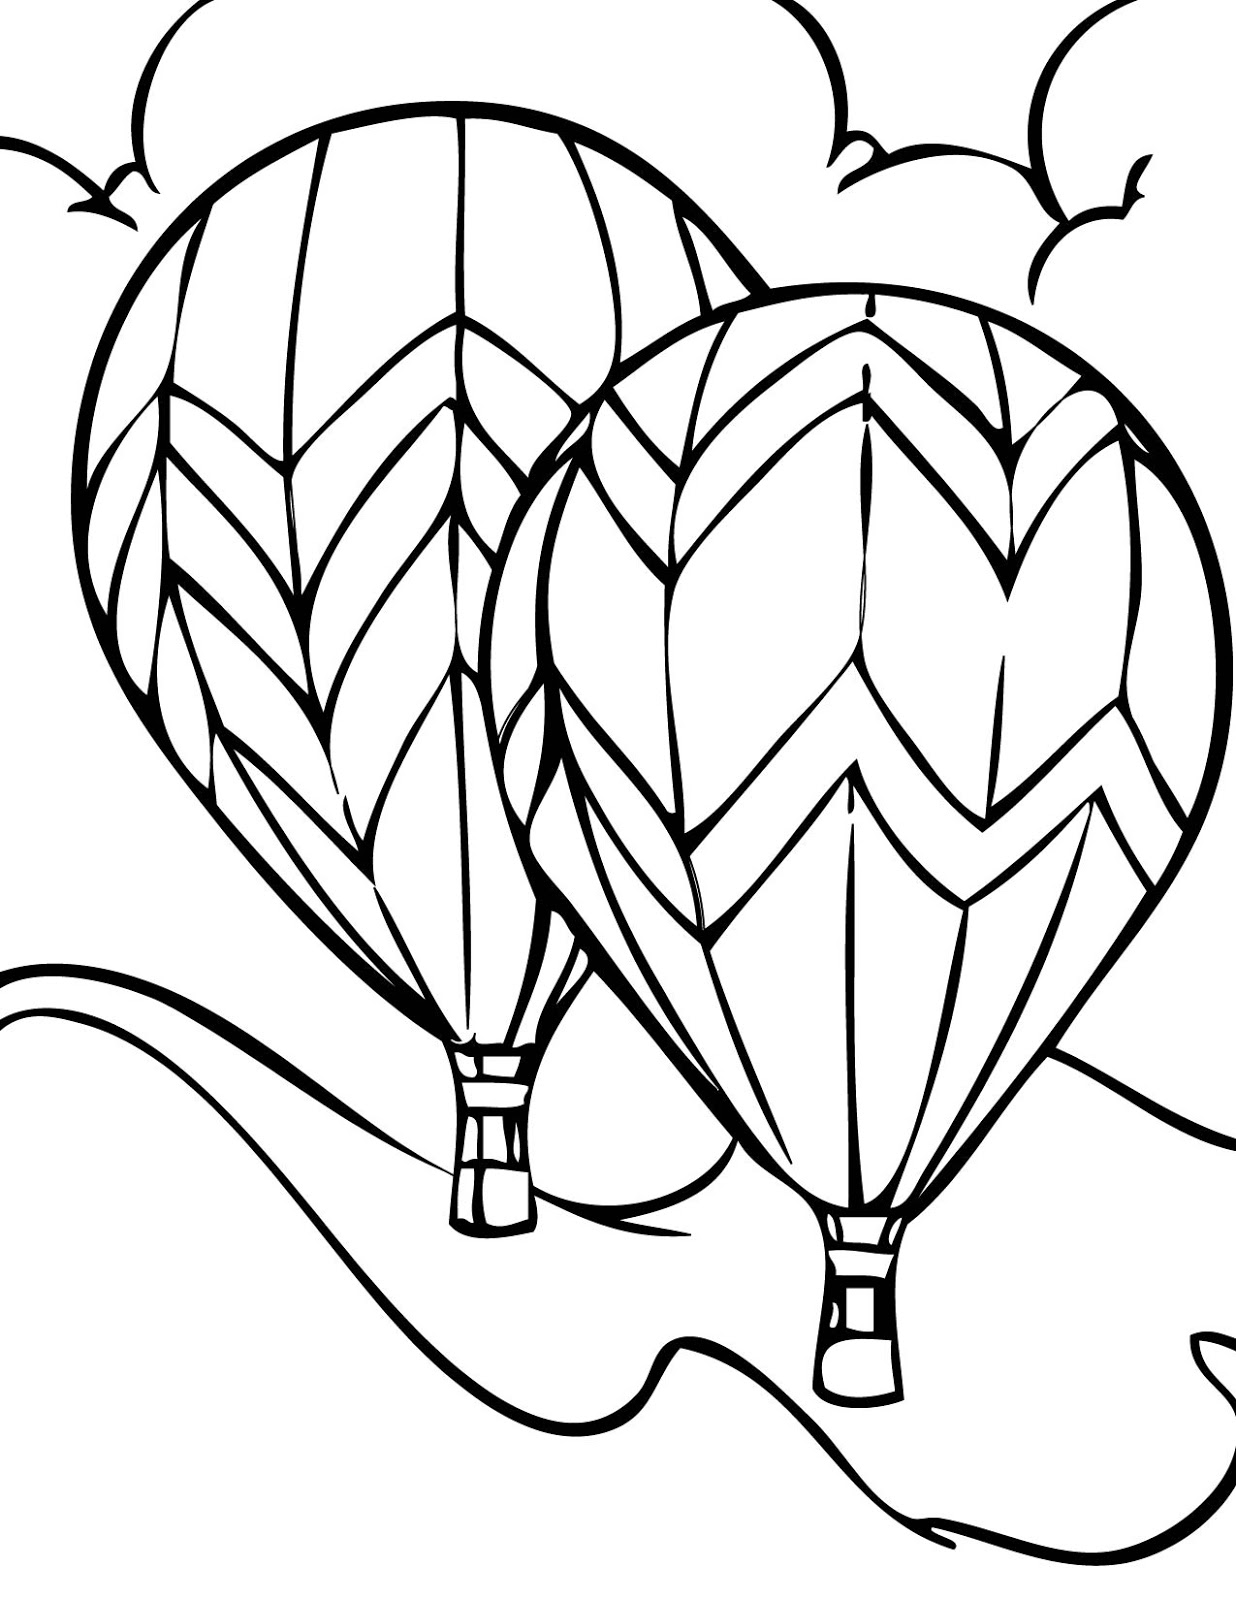 hot air balloon coloring pages all air balloon coloring page wecoloringpagecom balloon hot pages coloring air